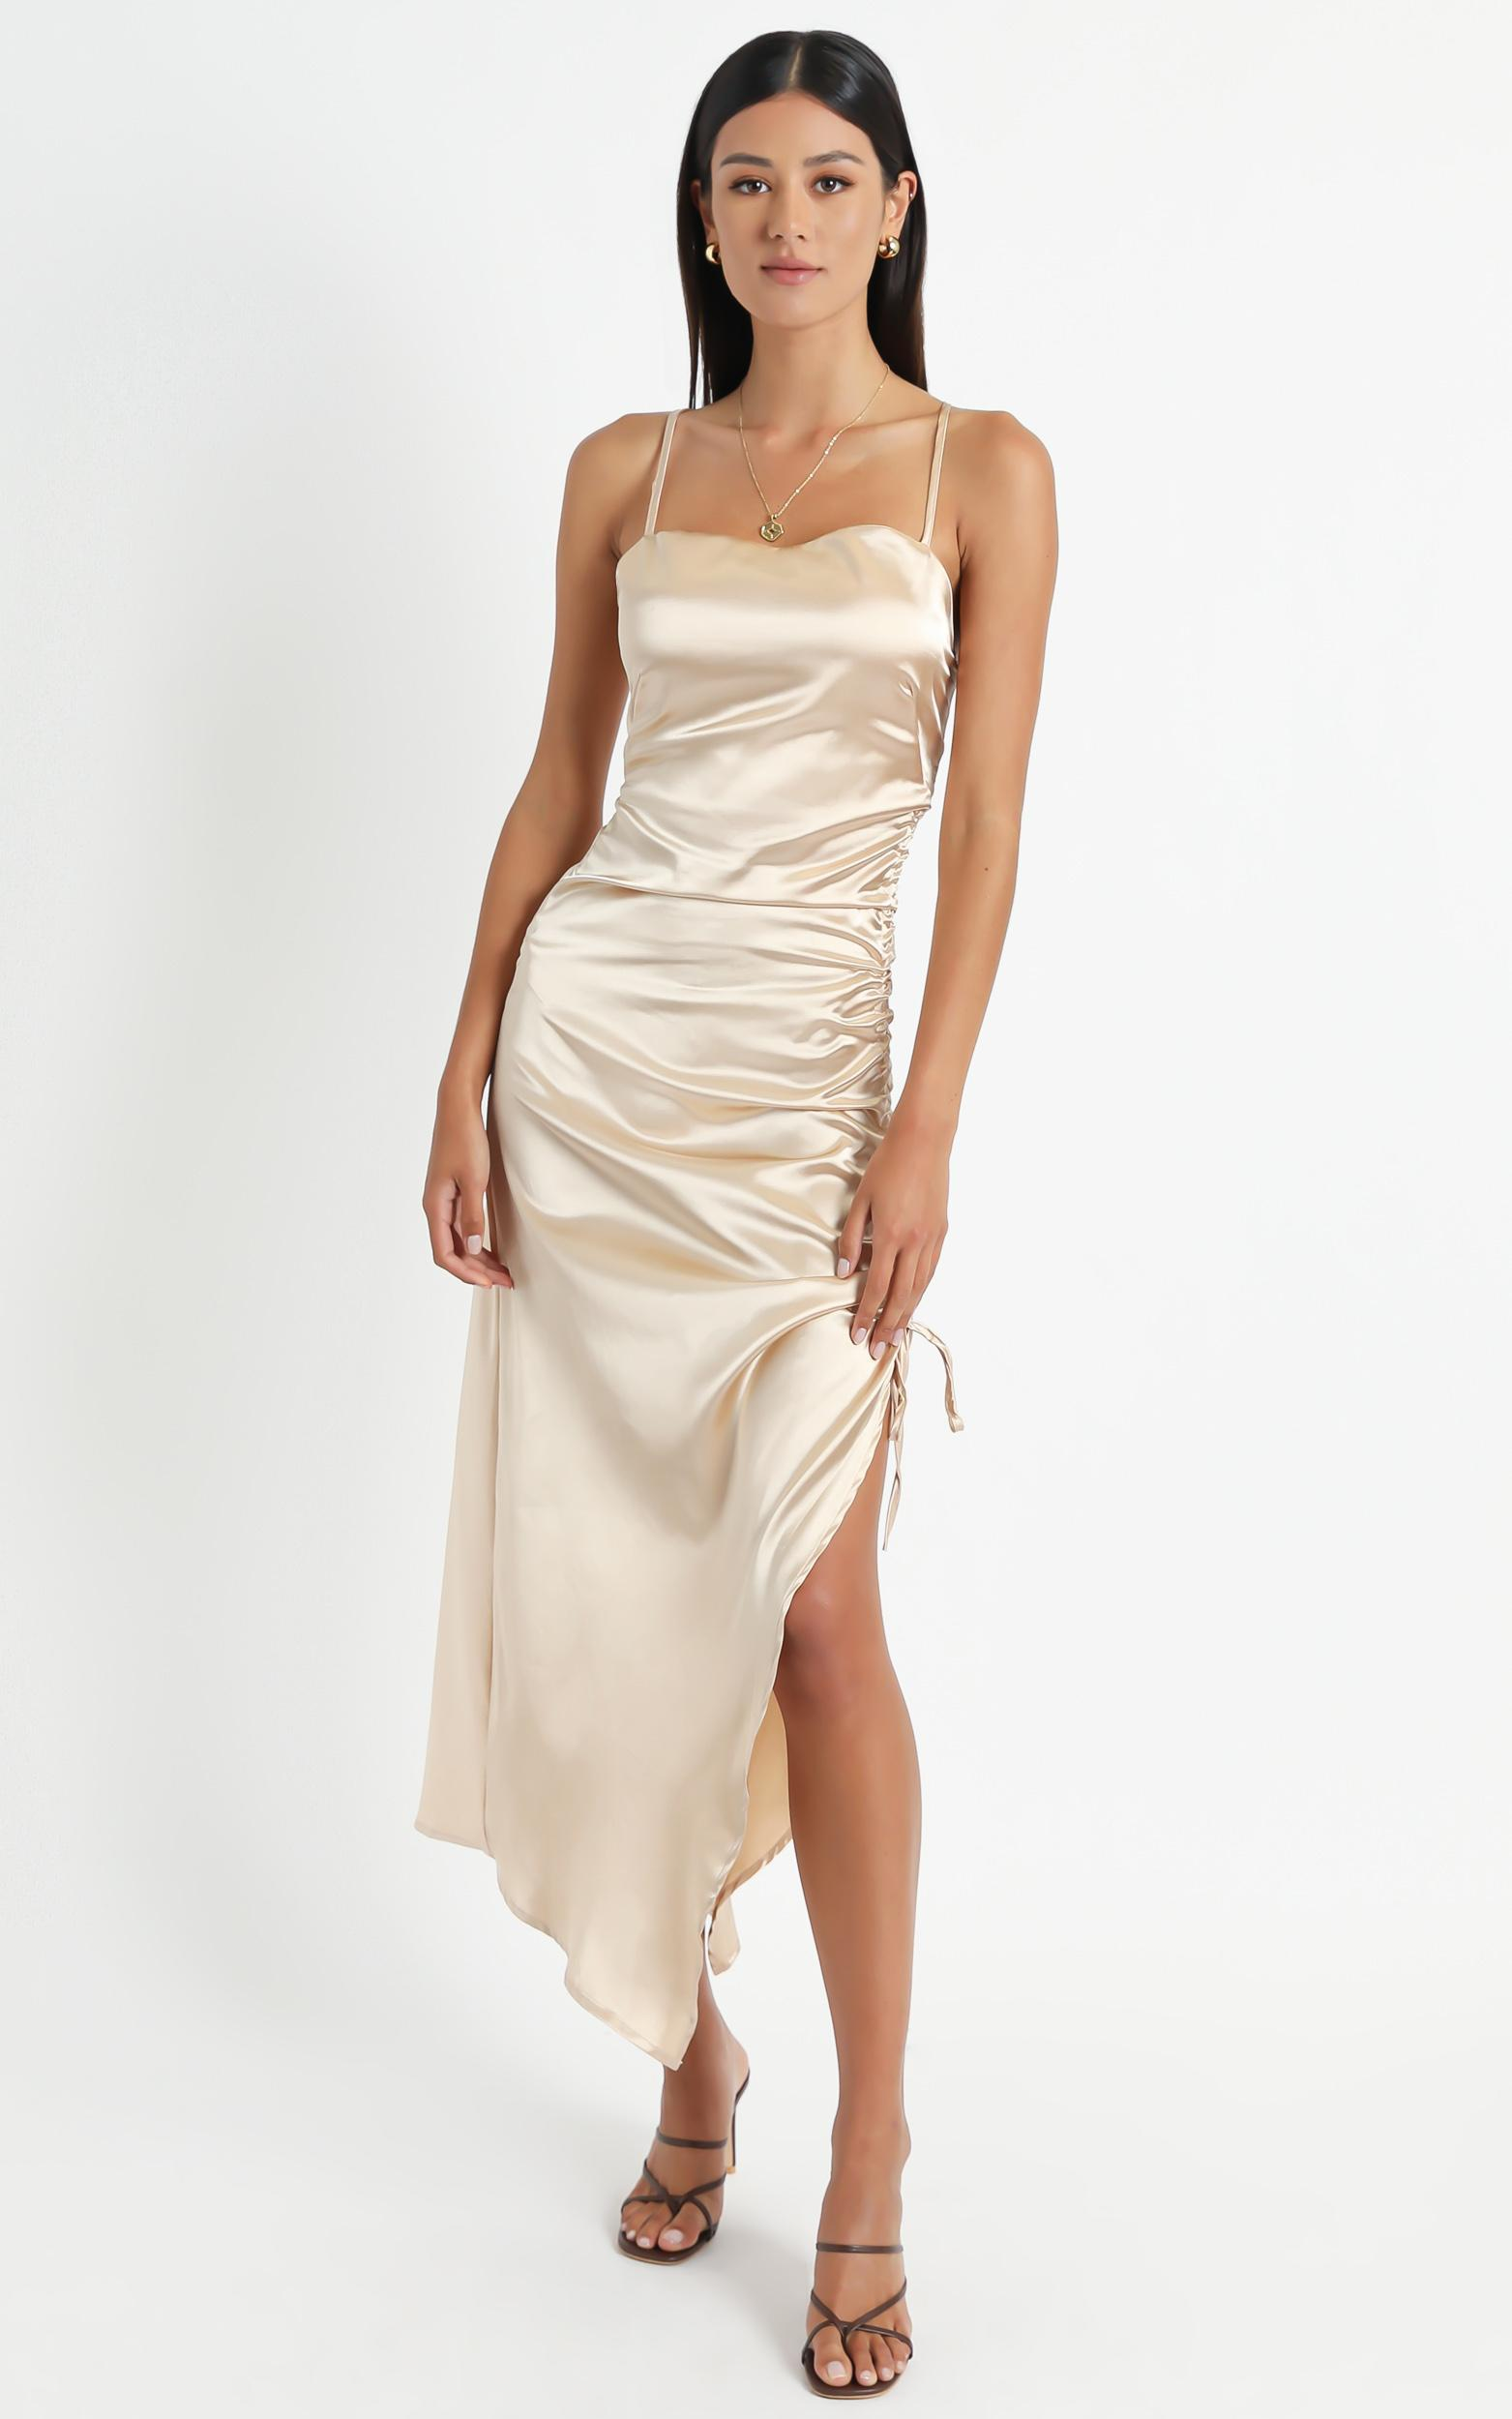 Dove Dress In Champagne Satin - 8 (S), NEU1, hi-res image number null